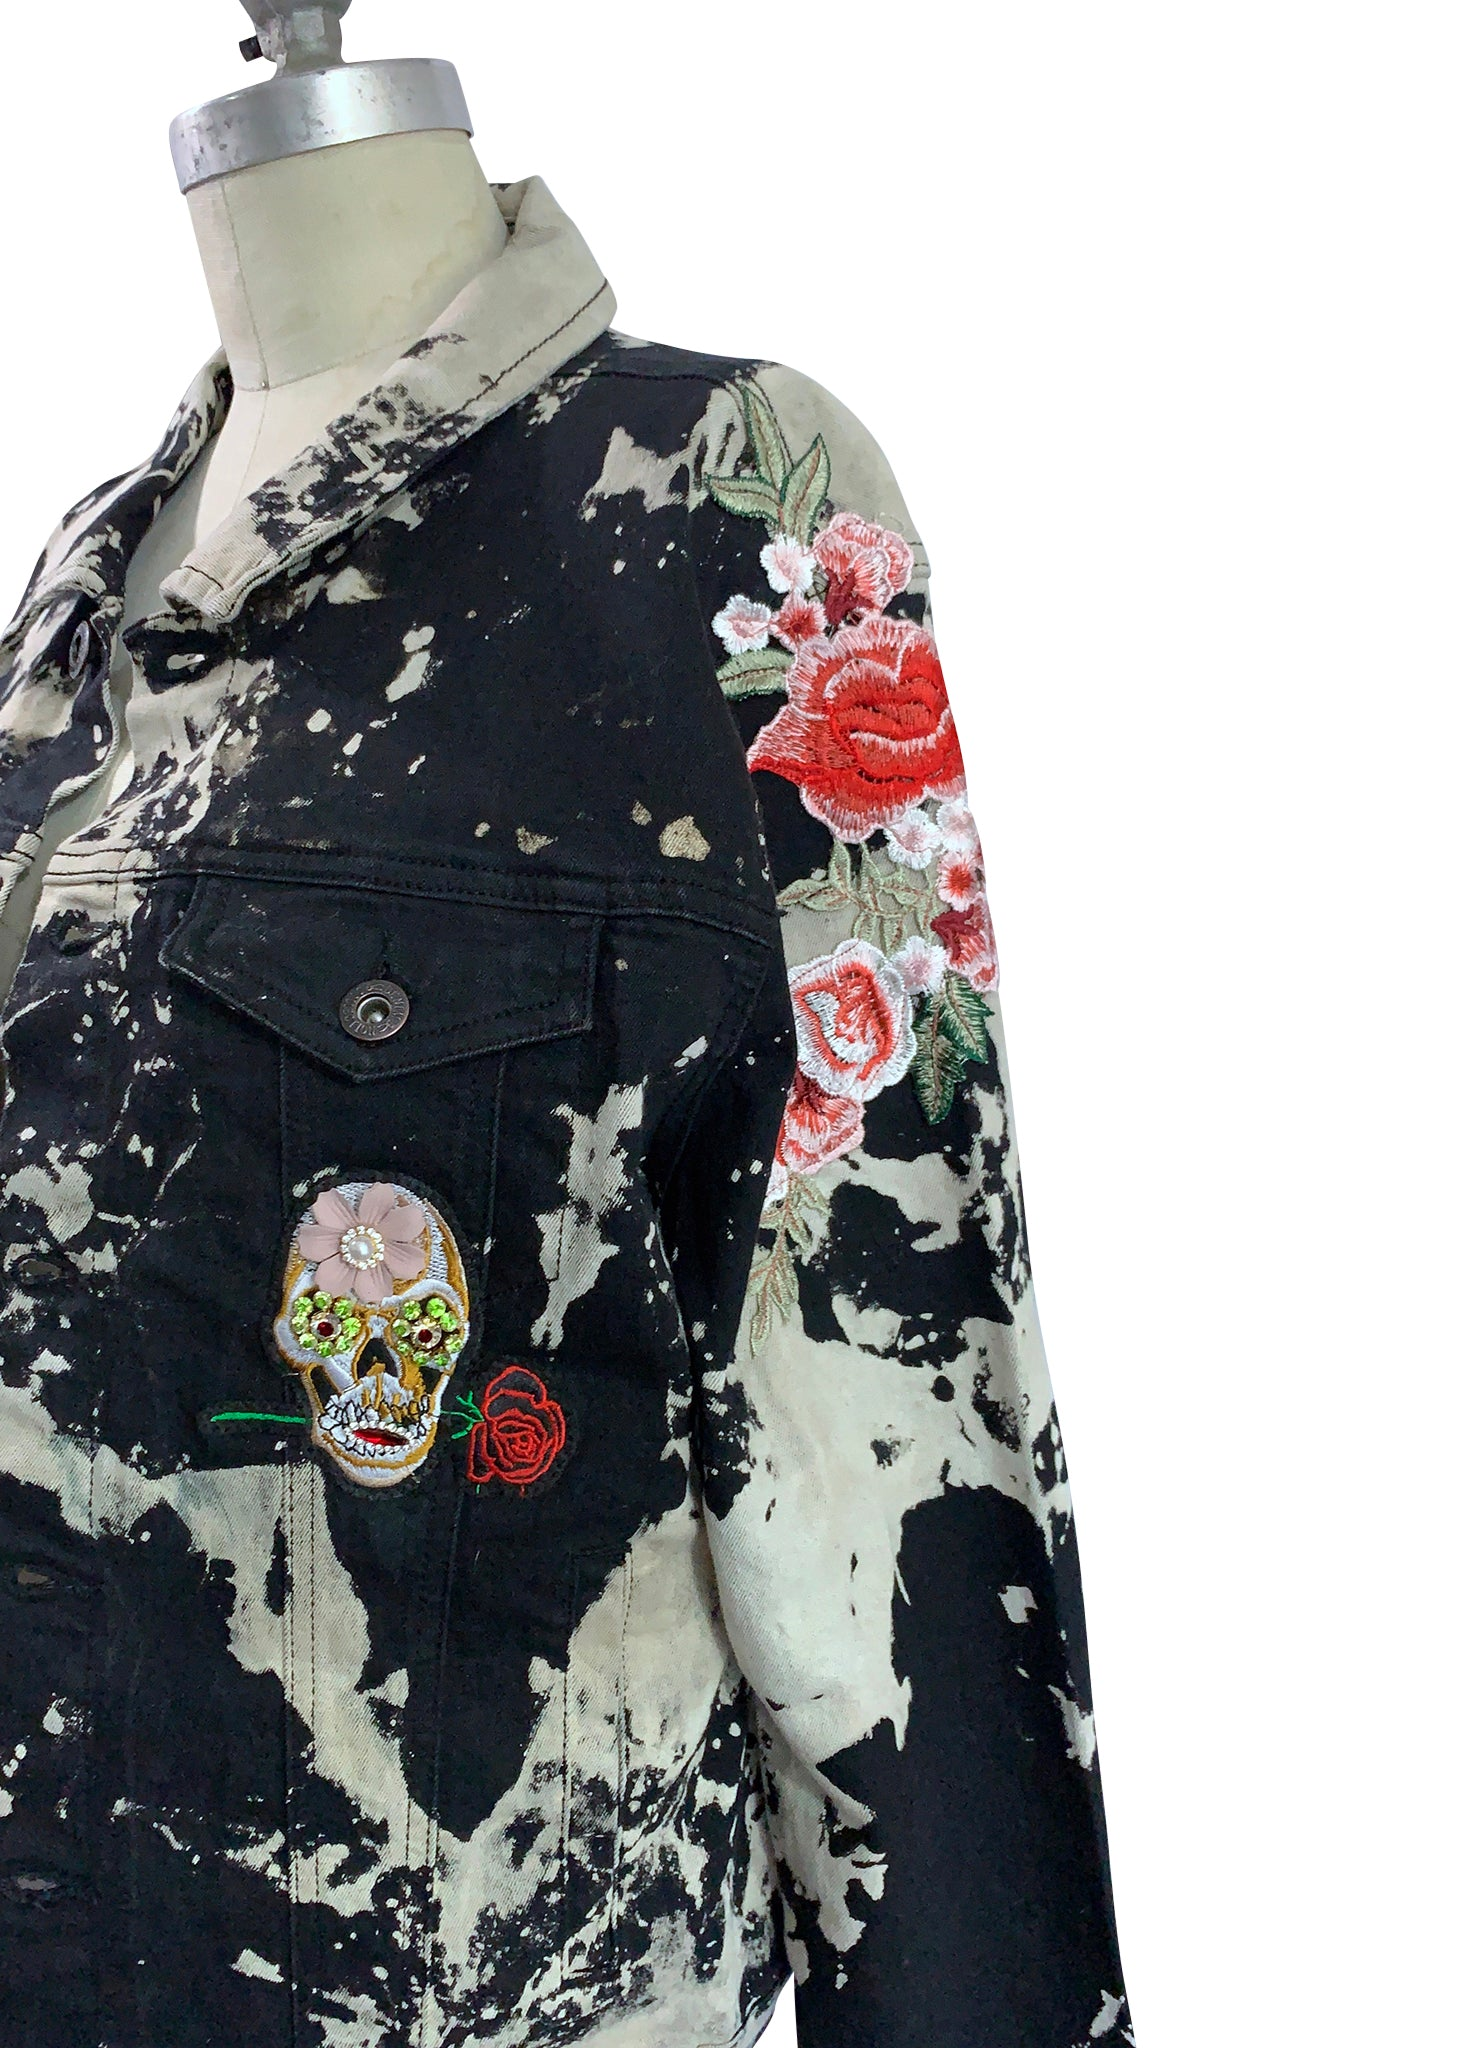 X-Large Hand-Dyed Black and White Denim Jacket  -